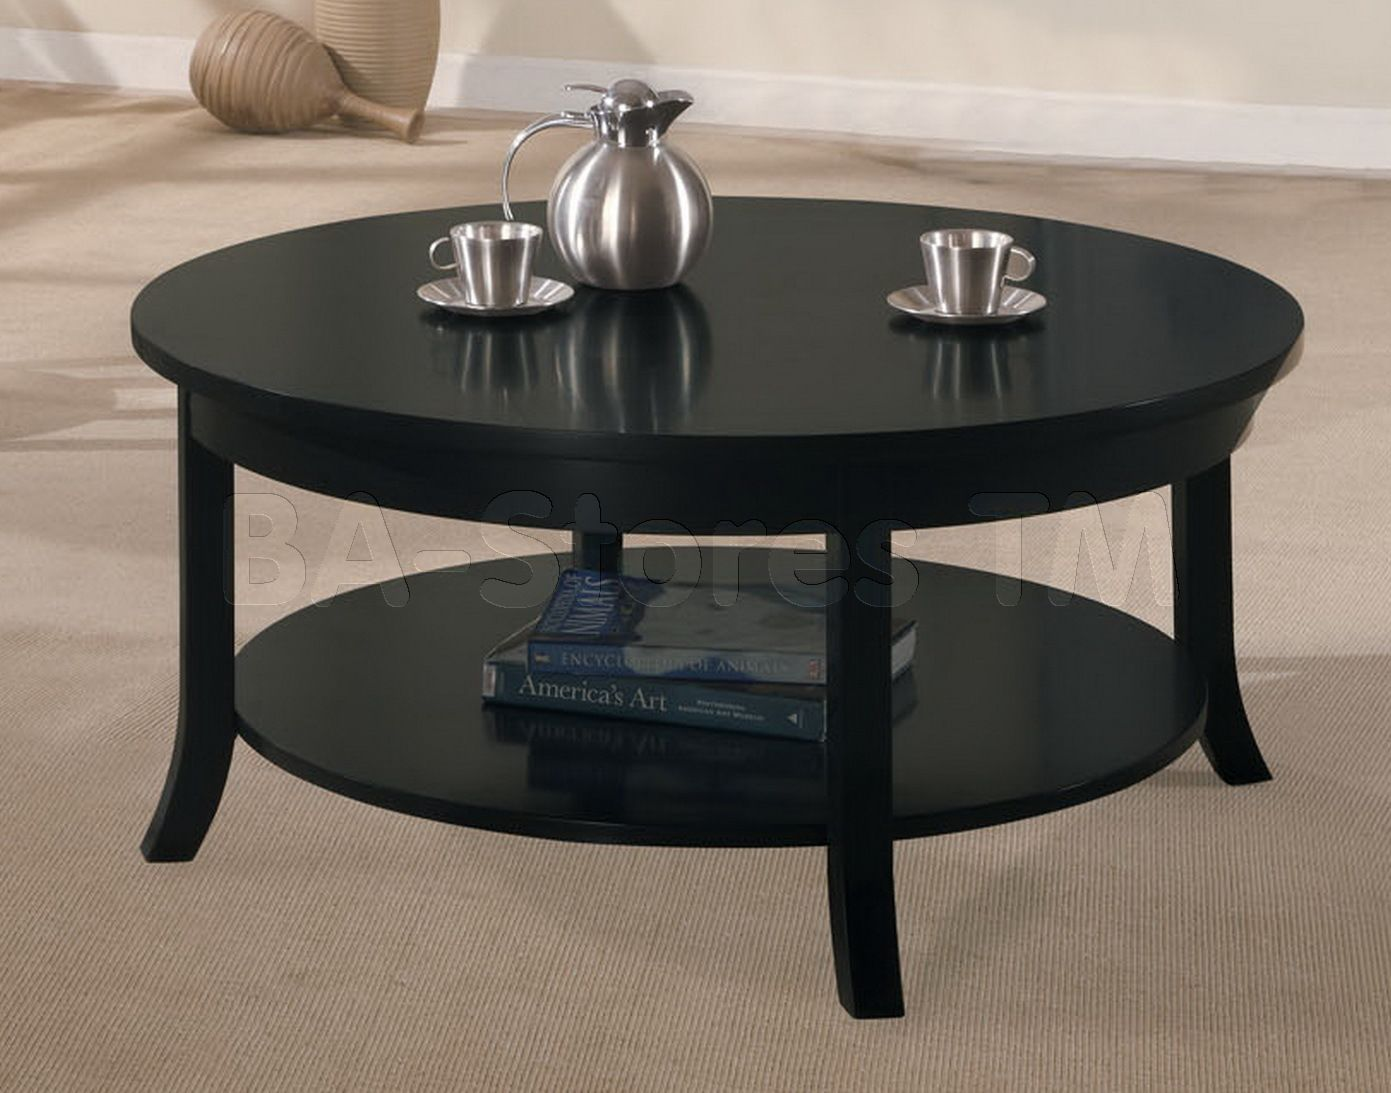 Best The Gardena Black Finish Collection Offers A Modern Design 640 x 480